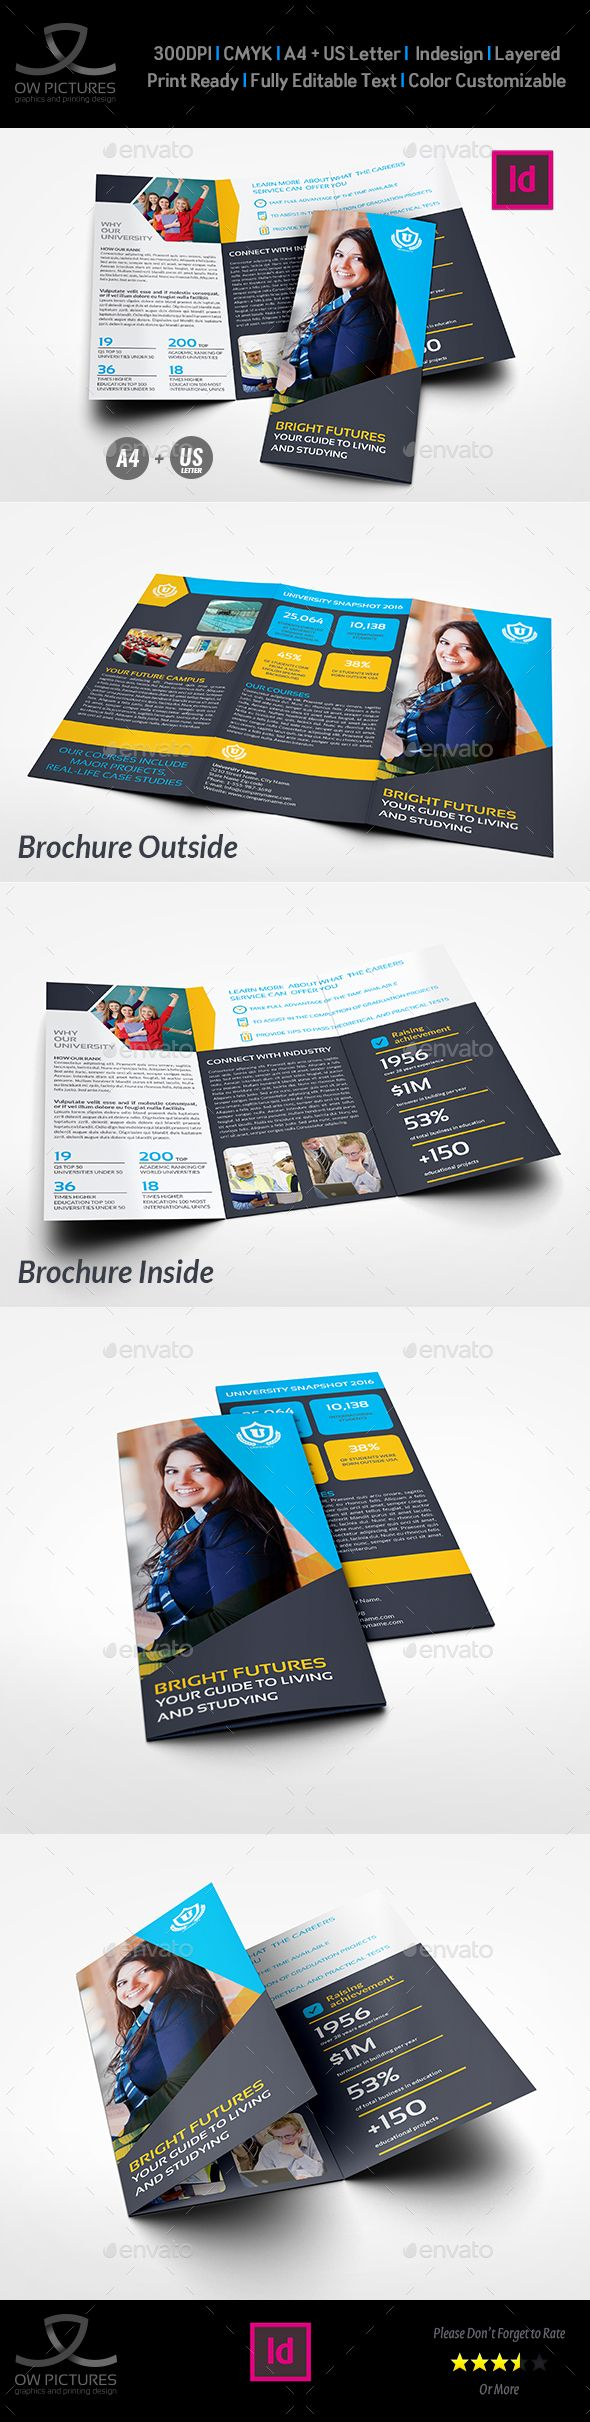 University  College Tri Fold Brochure Template  Brochures